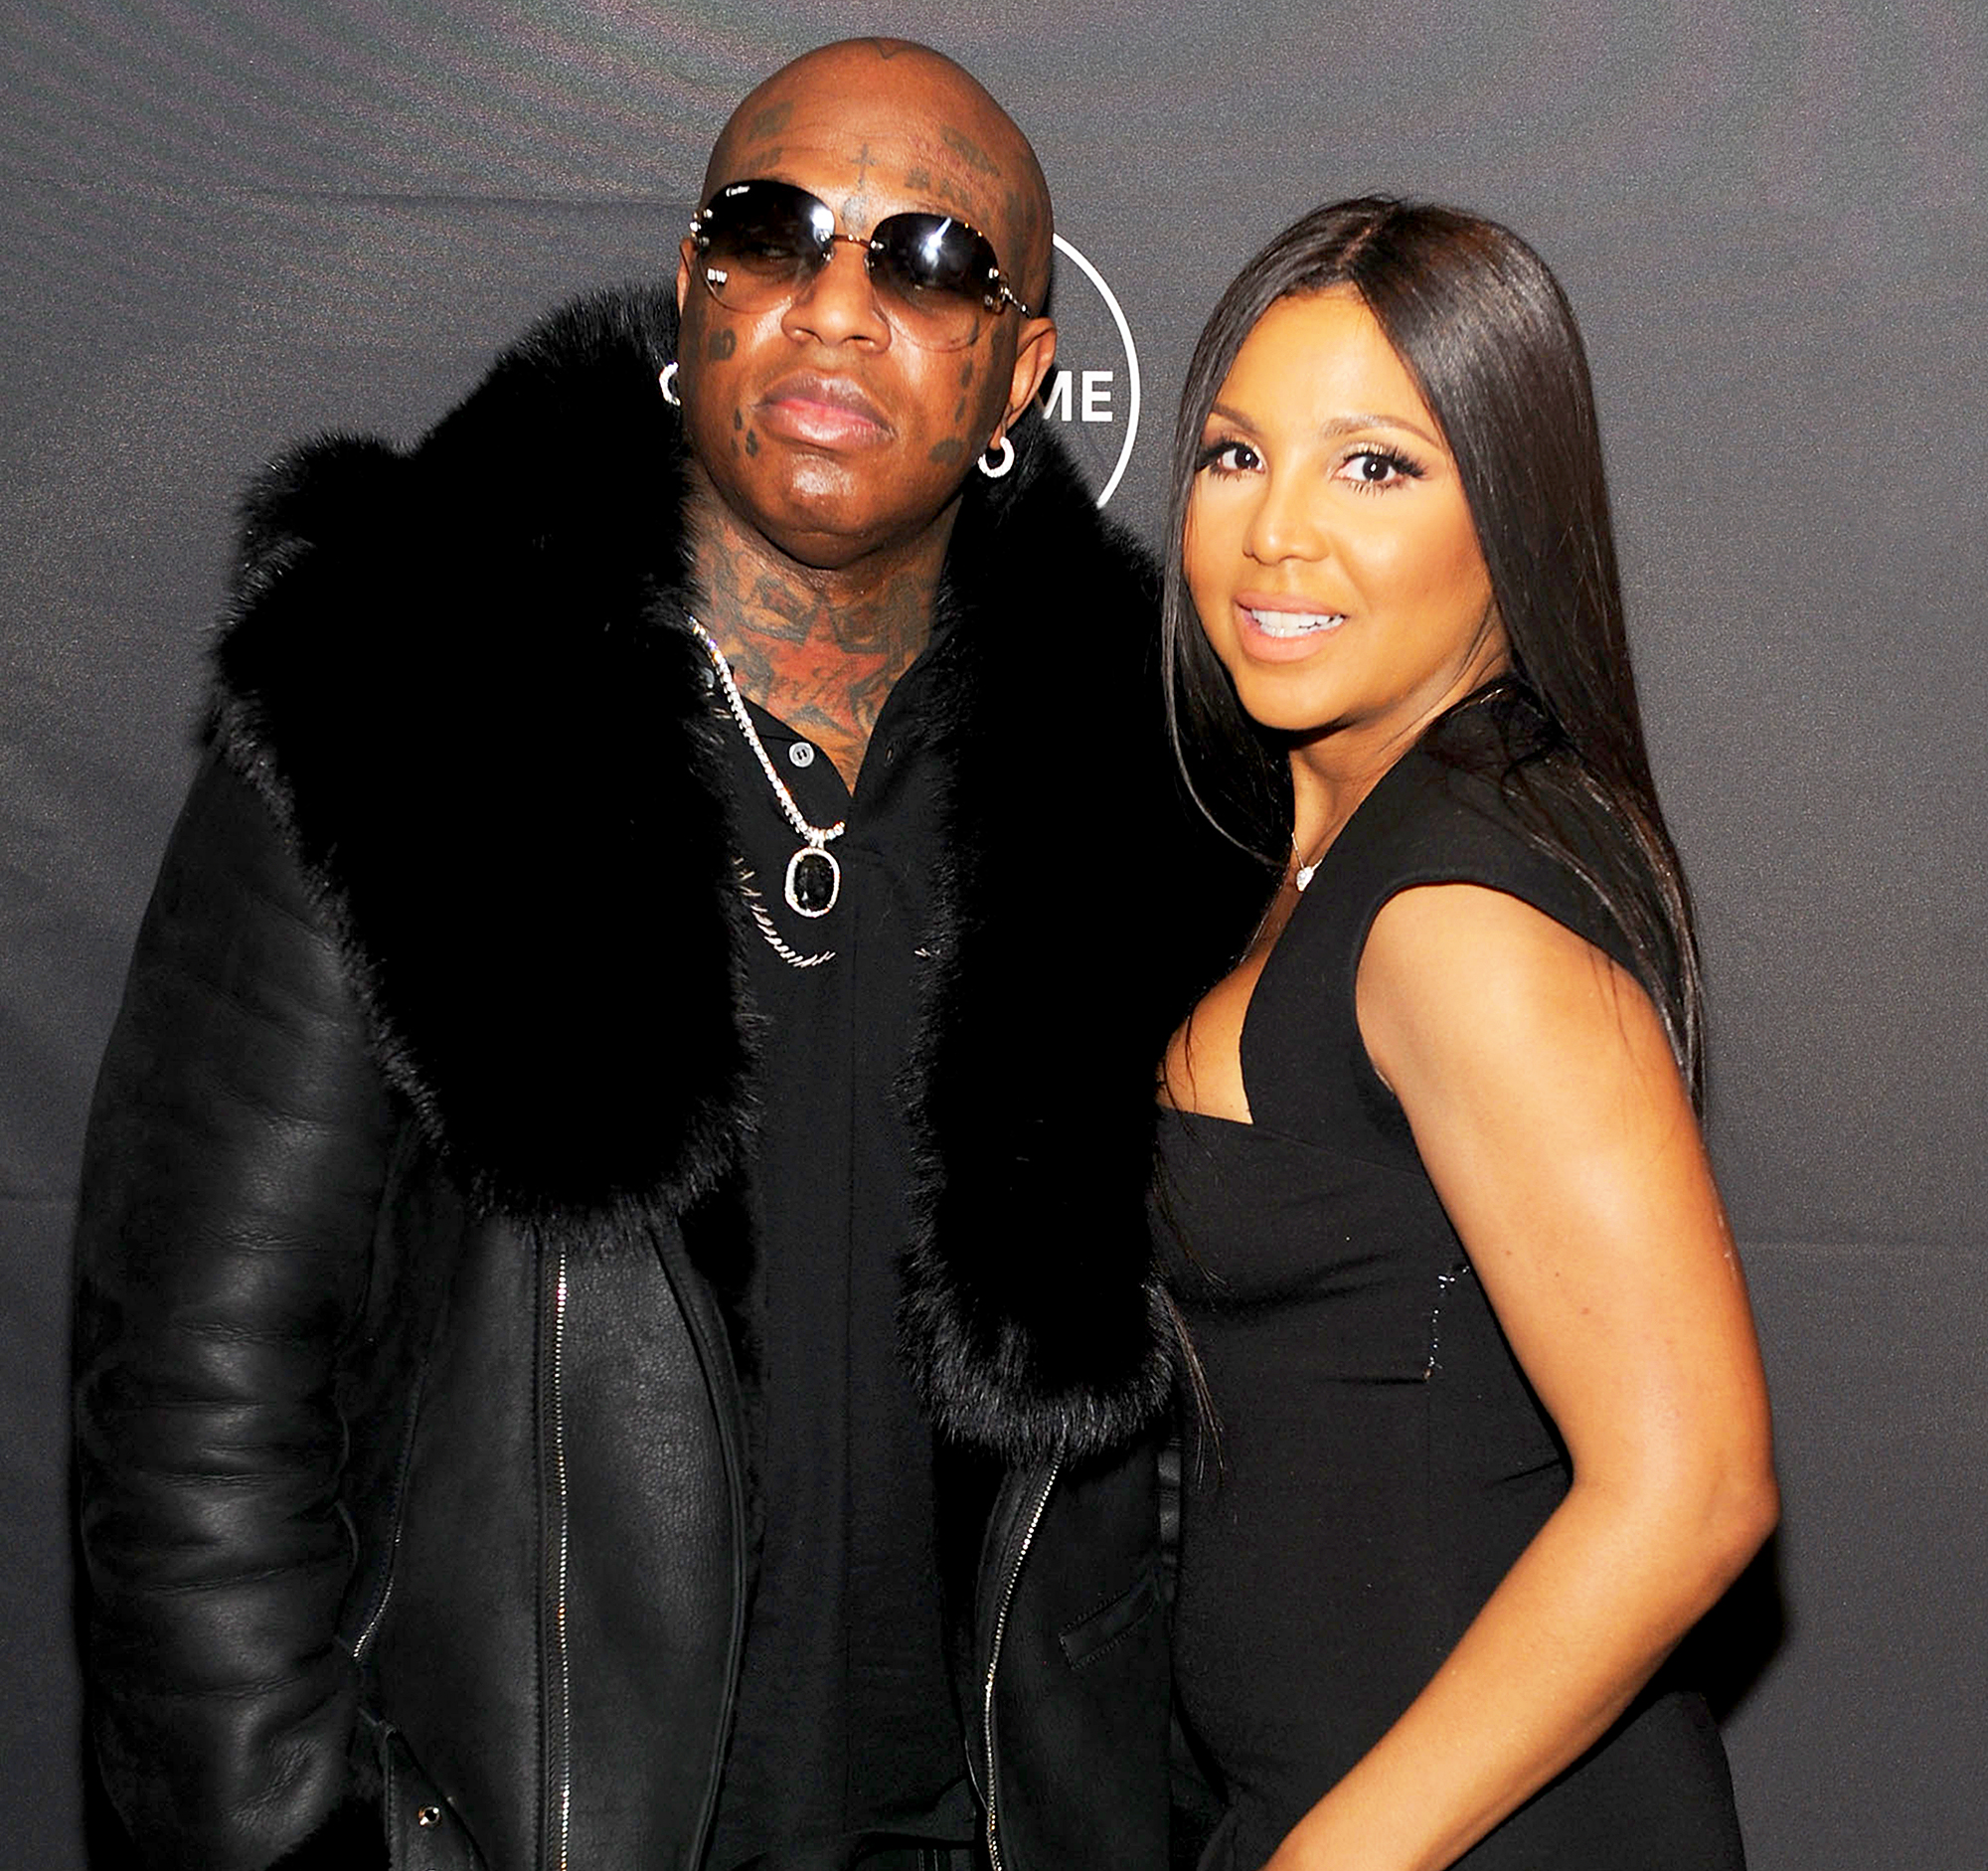 Braxton shows her engagement ring from Birdman in 'Family Values' trailer